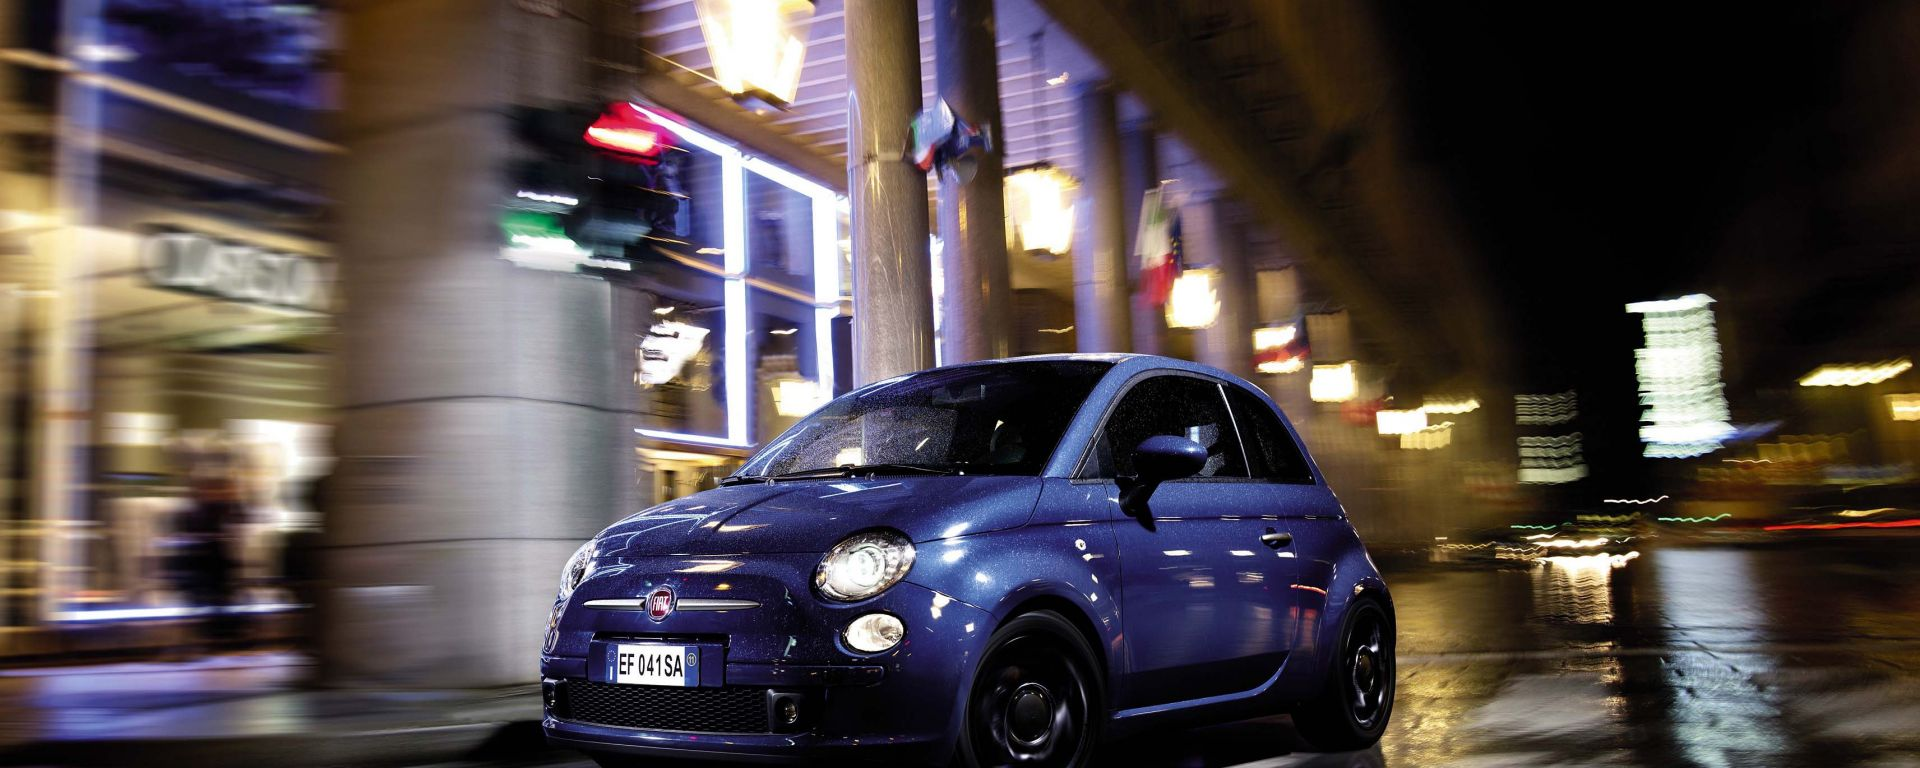 Day by day: Fiat 500 TwinAir 0.9